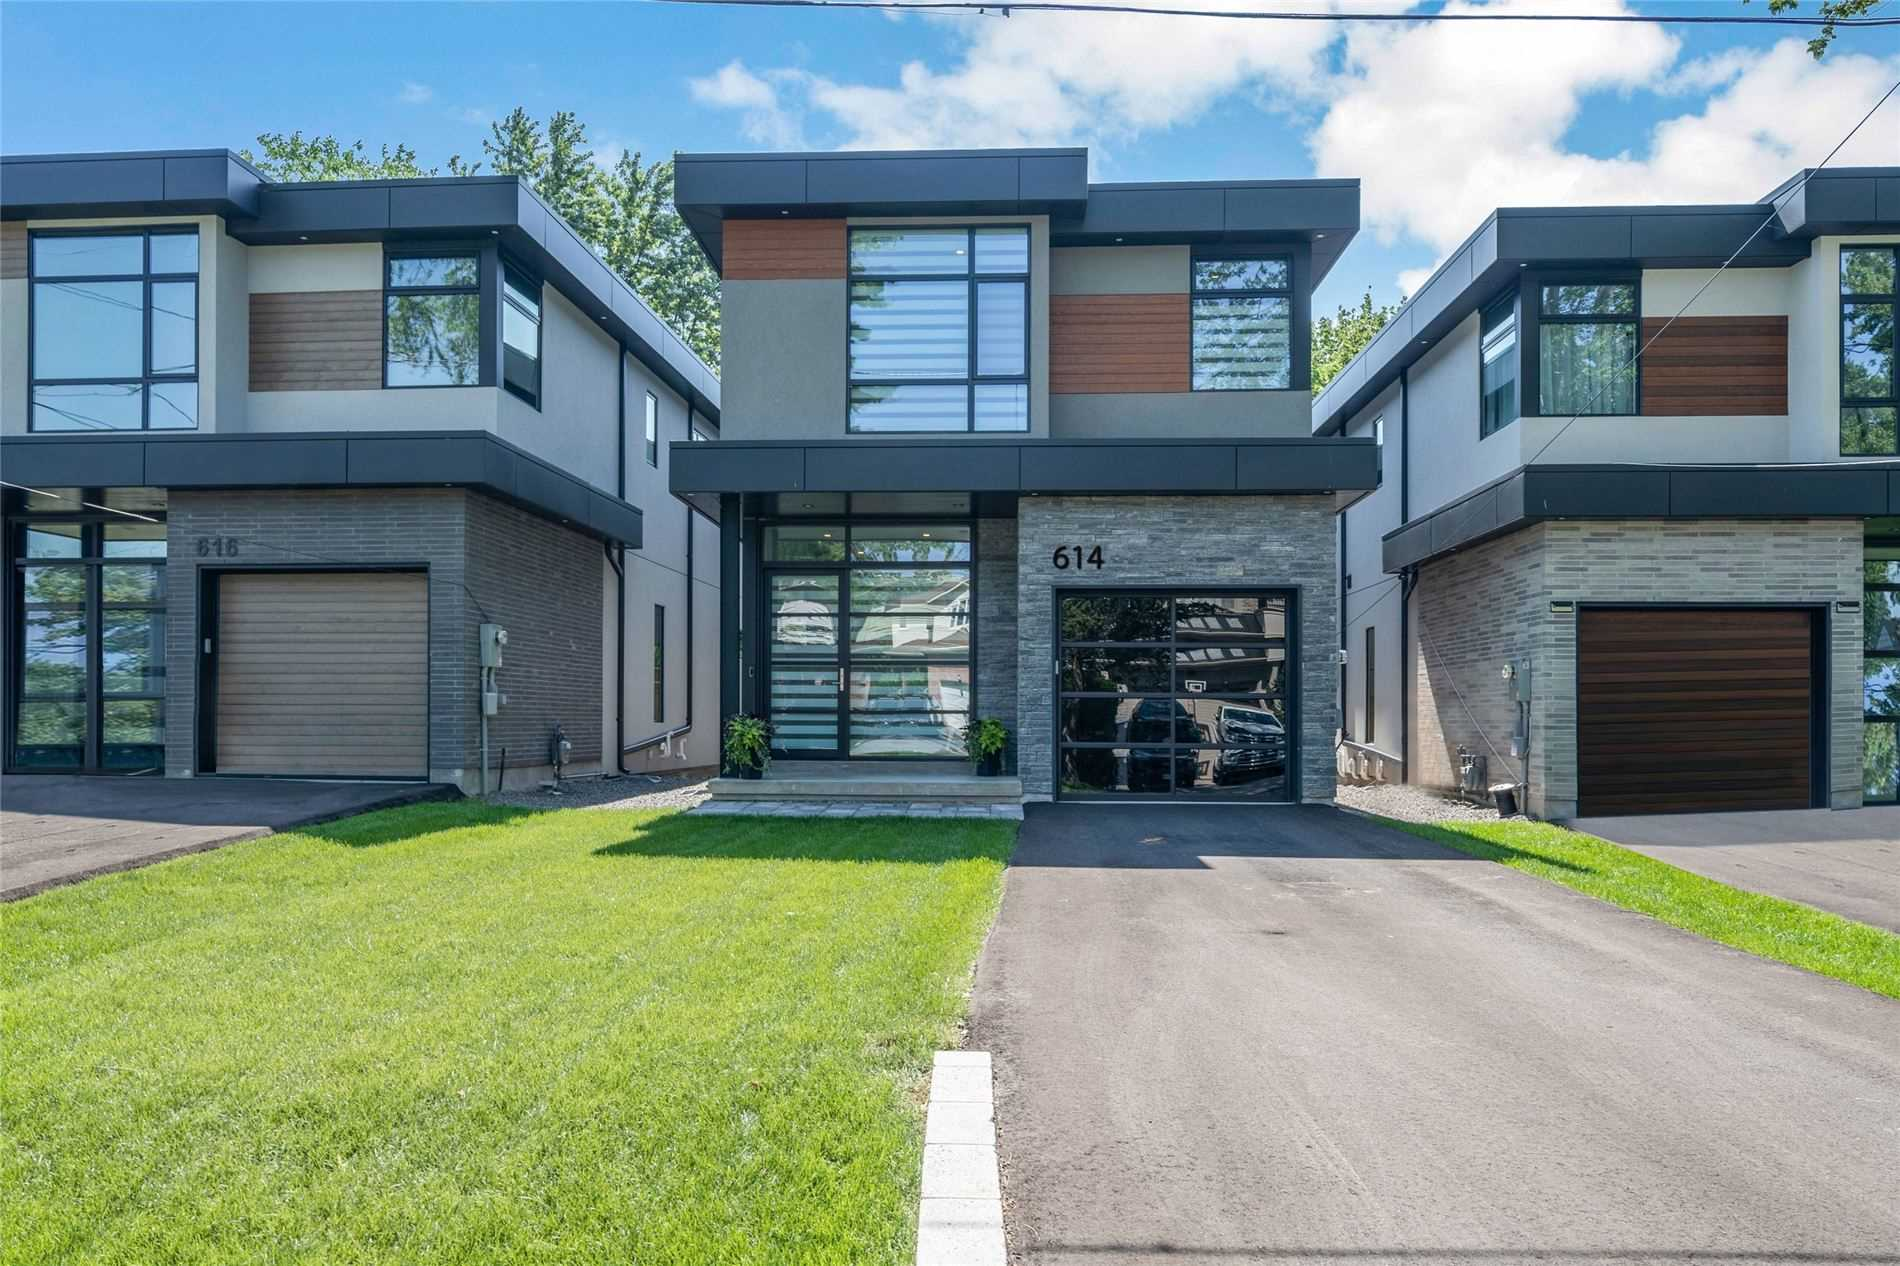 Detached house For Sale In Mississauga - 614 Curzon Ave, Mississauga, Ontario, Canada L5G1P9 , 4 Bedrooms Bedrooms, ,4 BathroomsBathrooms,Detached,For Sale,Curzon